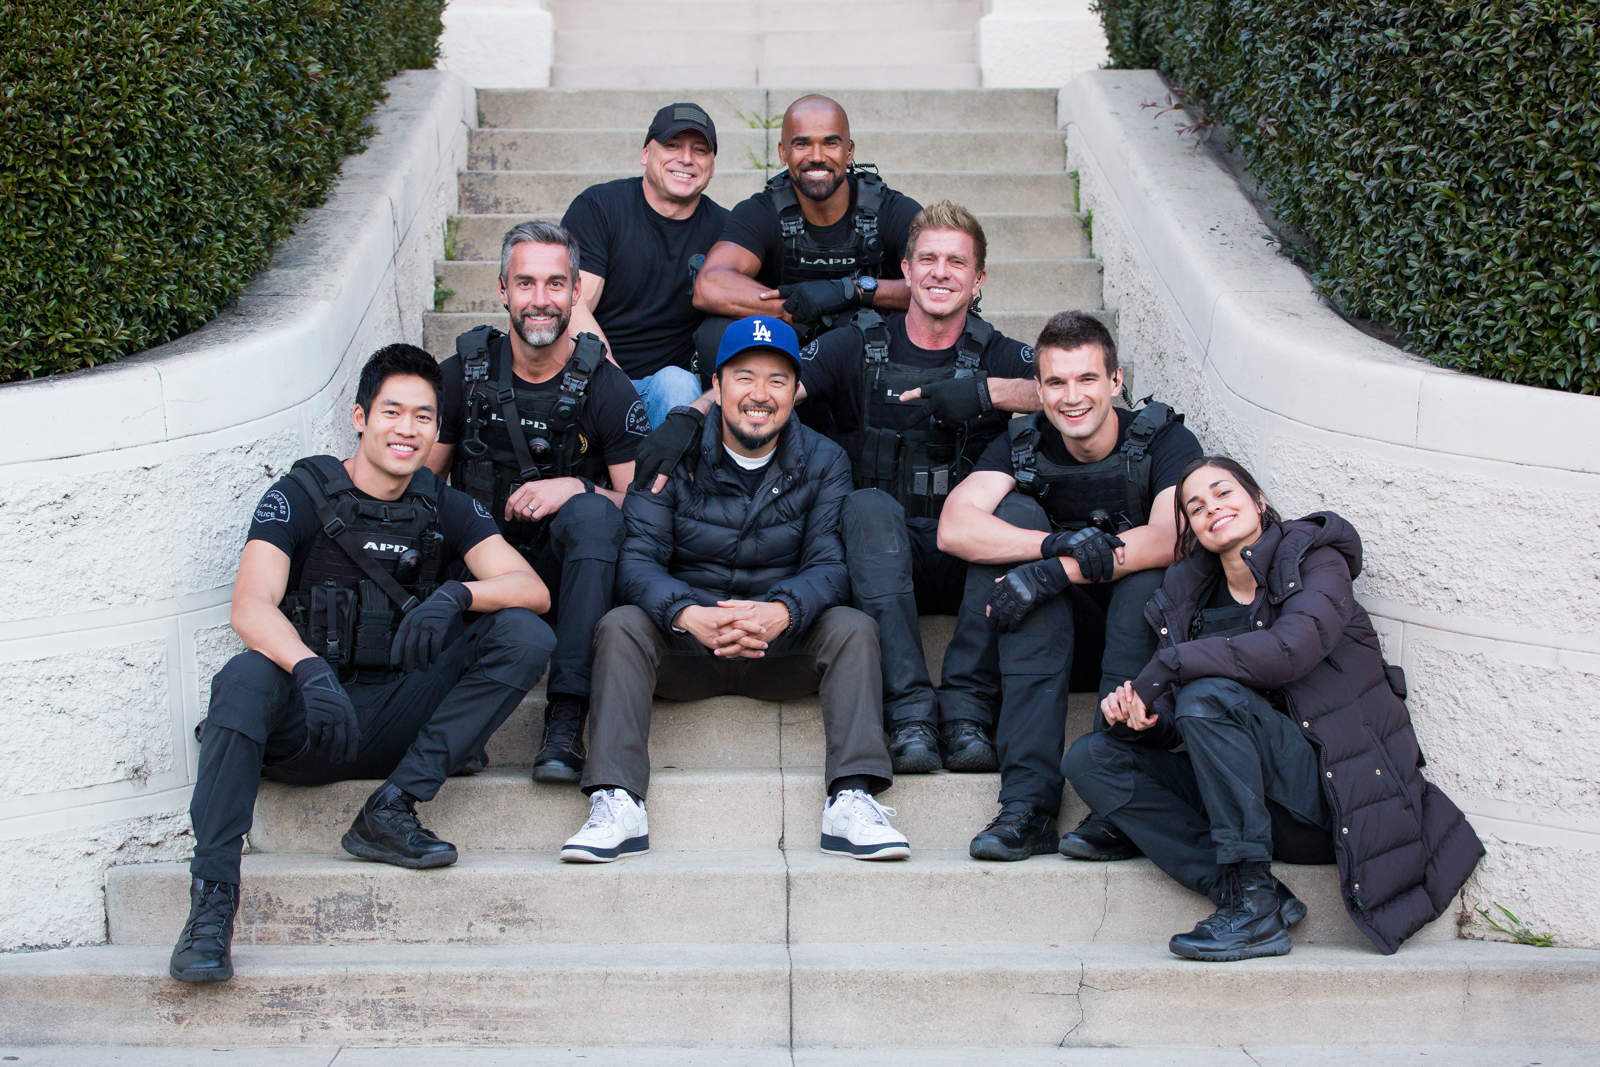 From left to right: David Lim, Jay Harrington, Odie Gallup (S.W.A.T. Technical Advisor), Justin Lin (Director/Producer), Shemar Moore, Kenny Johnson, Alex Russell, Lina Esco